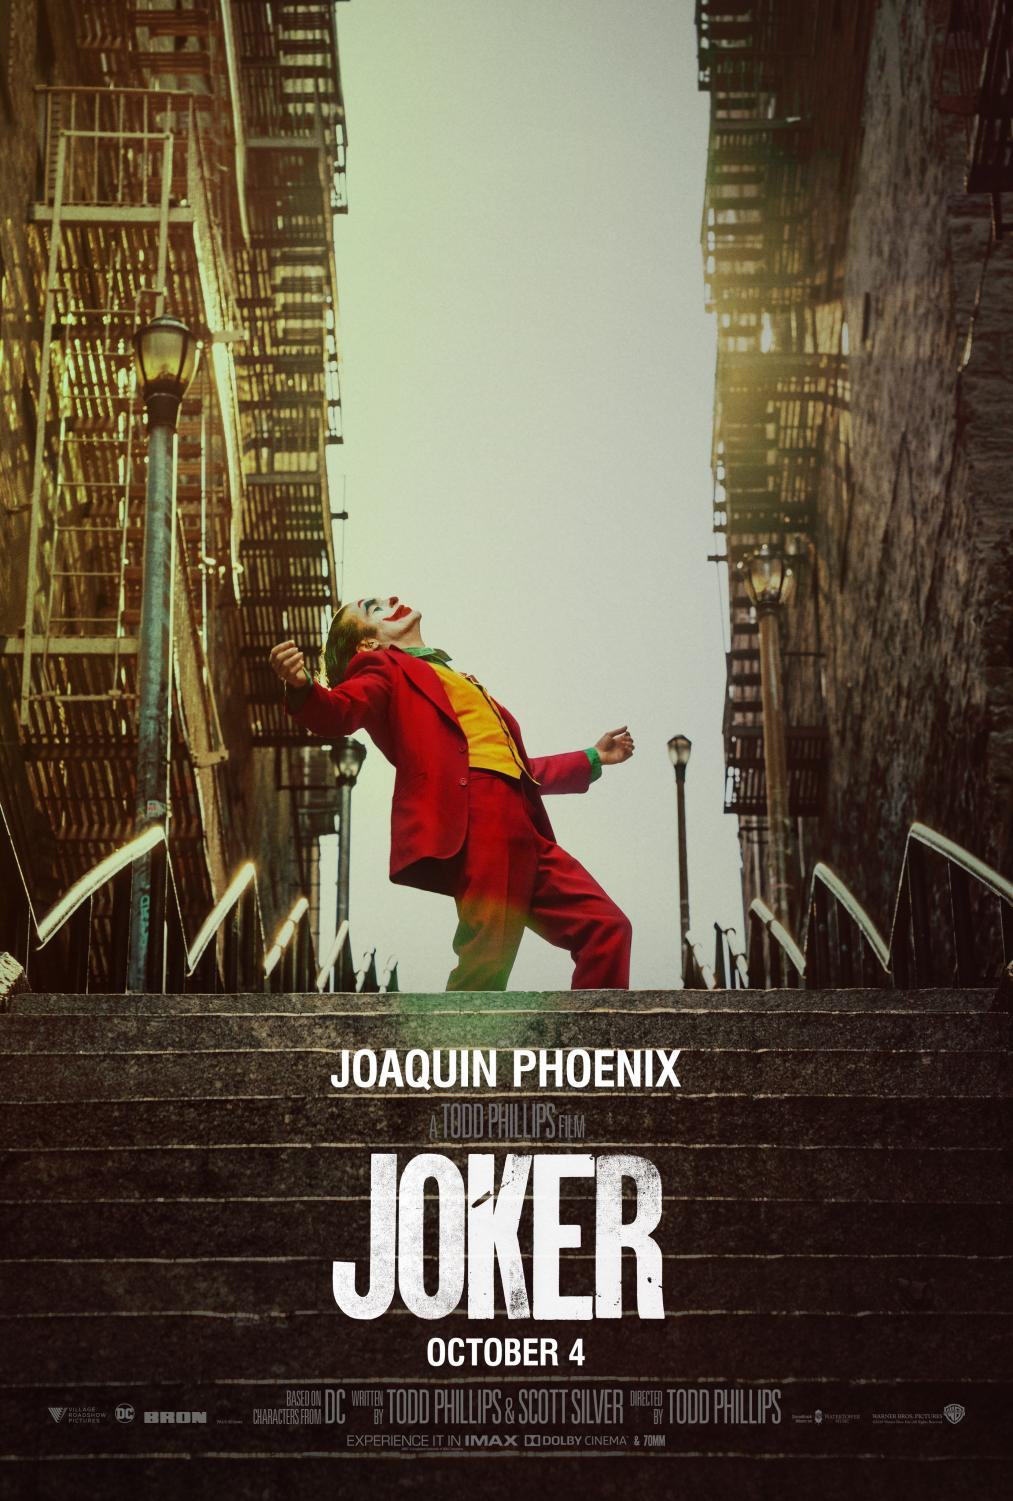 The poster for Joker. After it won the best film award at the Venice Film Festival, Oscar buzz started to surface.